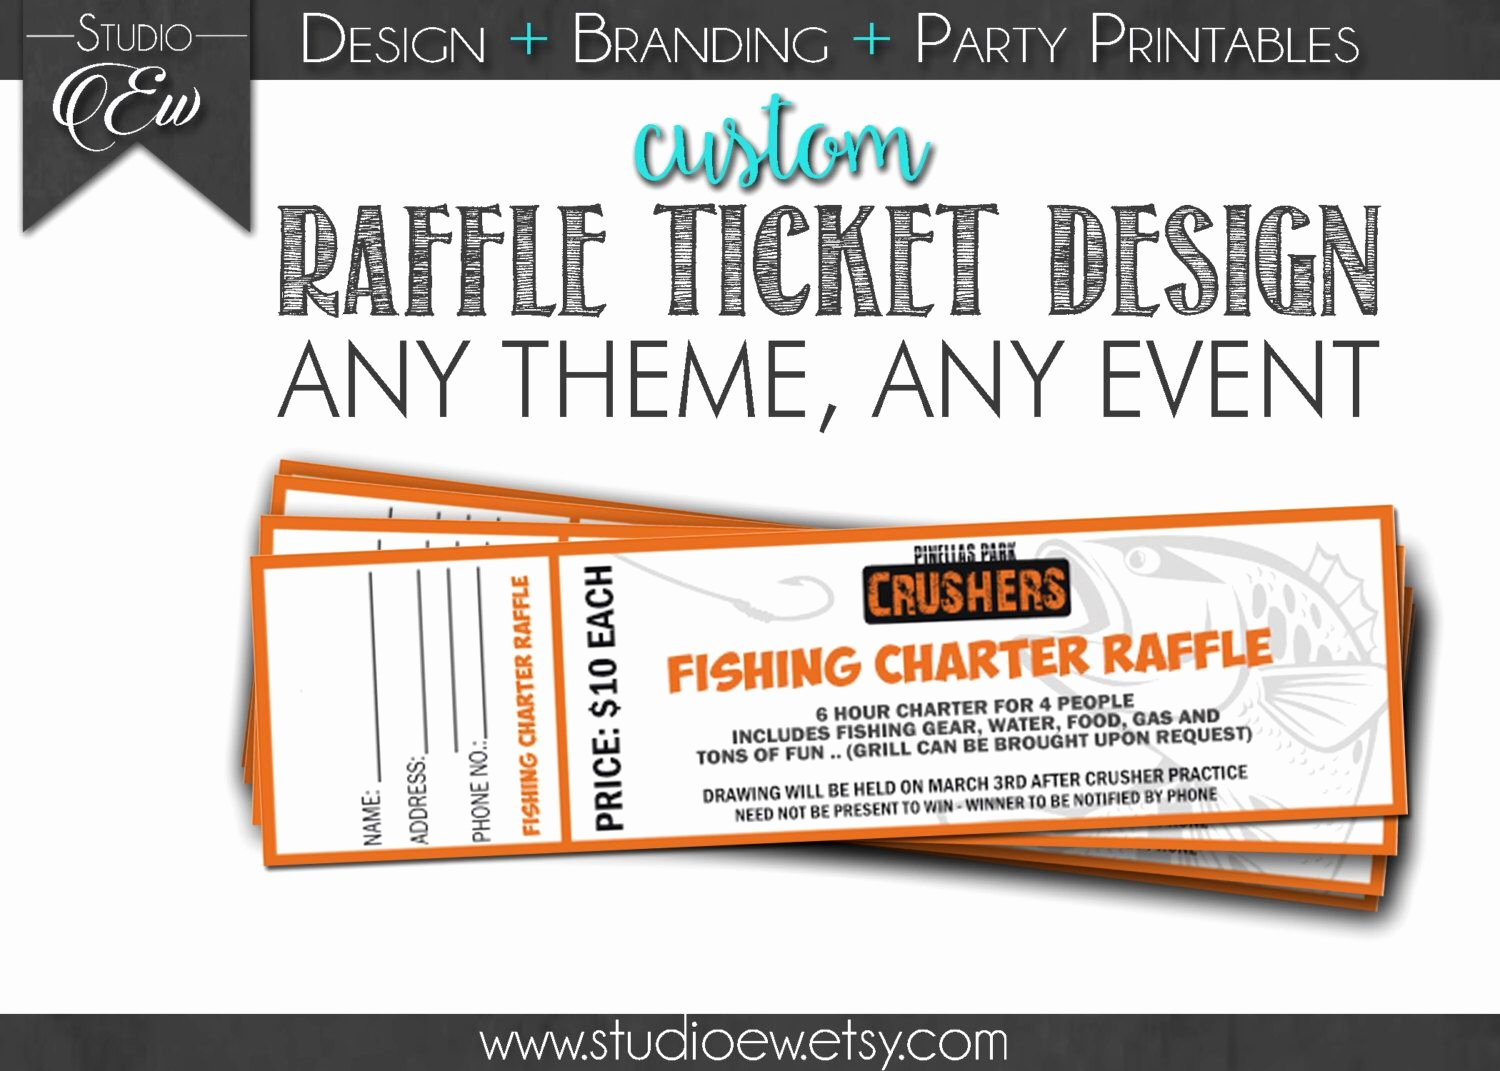 Fundraising Ticket Template Free Elegant Custom Raffle Ticket Design Any event Any theme